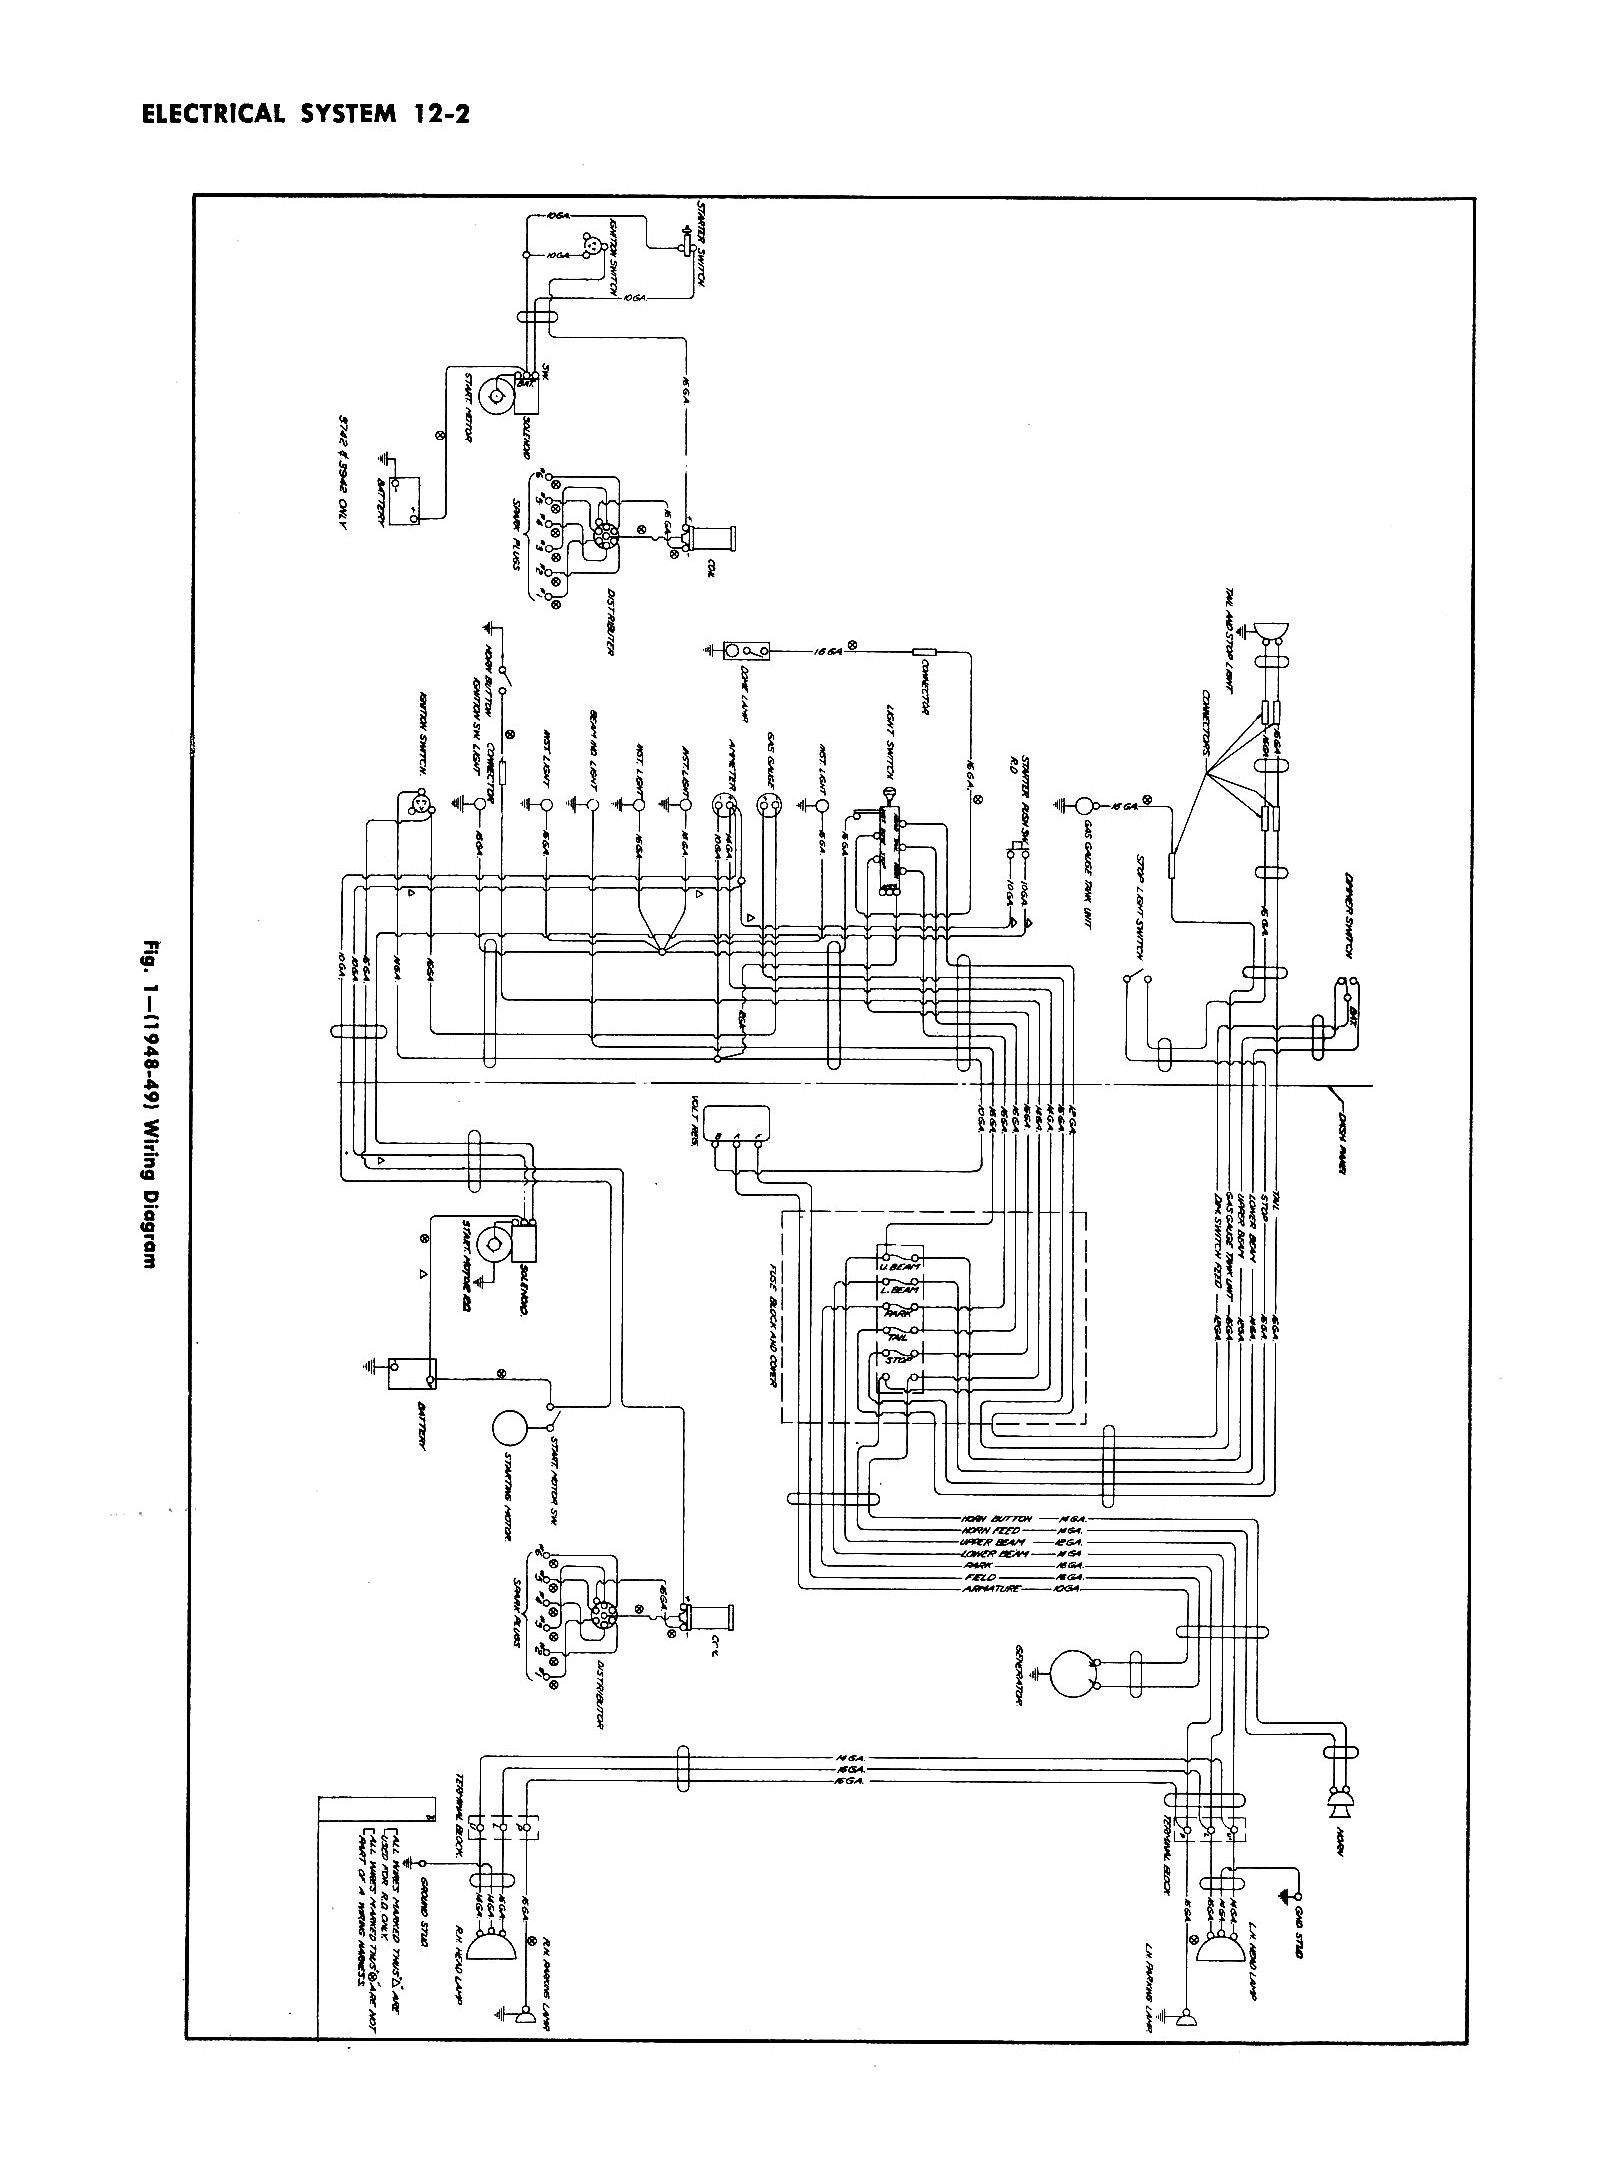 chevy wiring diagrams rh chevy oldcarmanualproject com Chevy Wiring Harness Diagram Chevy Truck Wiring Diagram